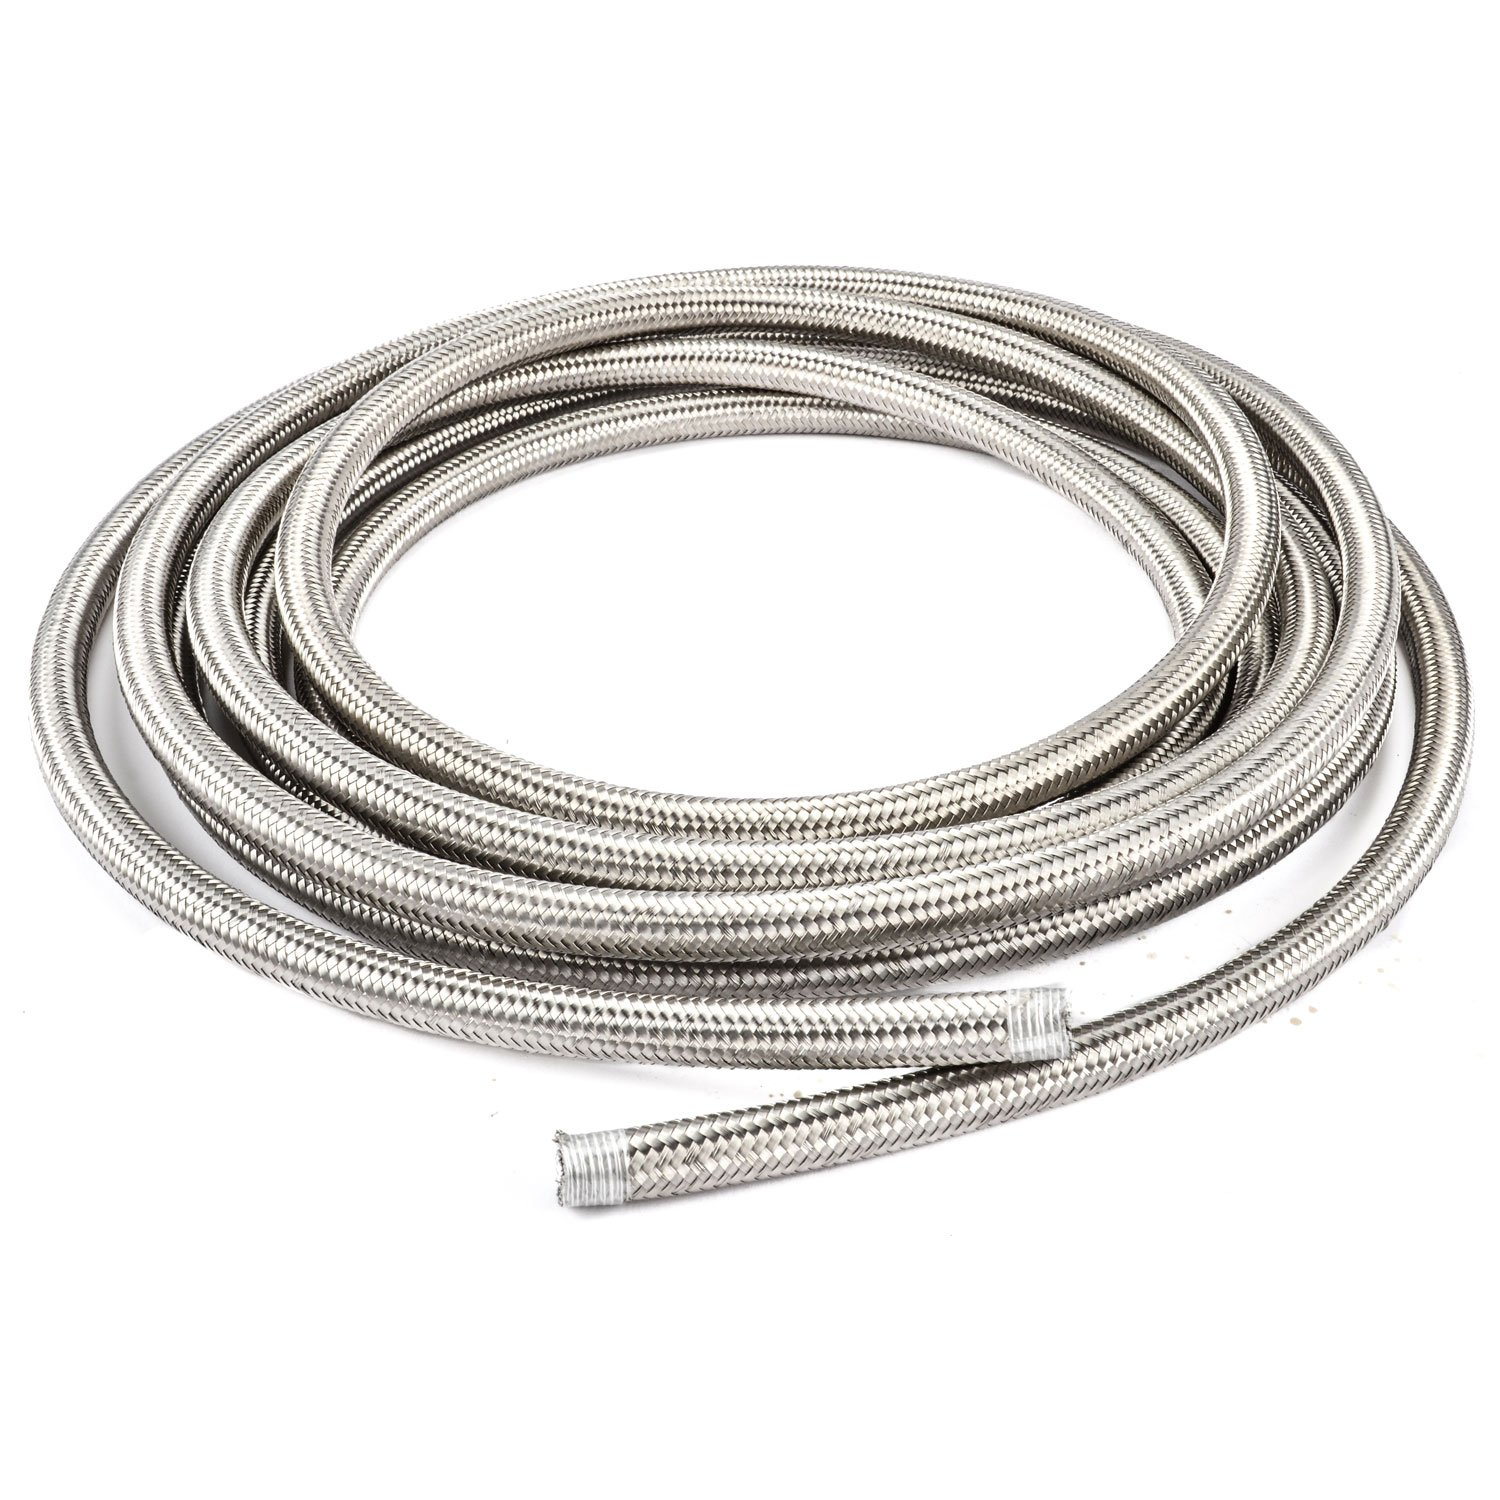 Russell 632090 - Russell ProFlex Stainless Steel Braided Hose